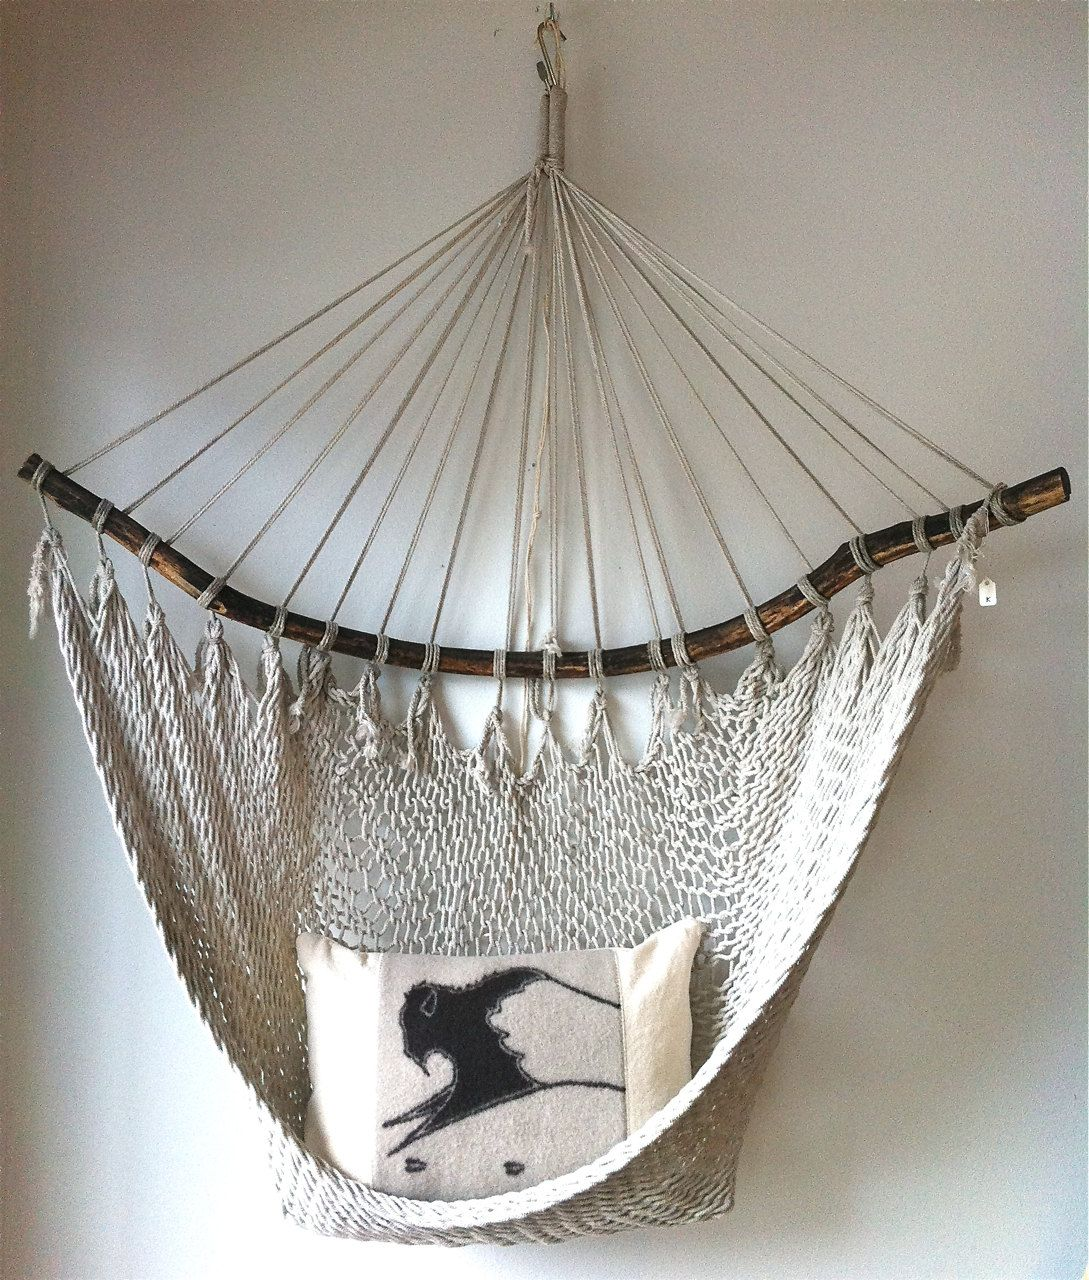 Vintage Hammock Chair / Fishnet Egg Chair Sling By Ethanollie, $98.00